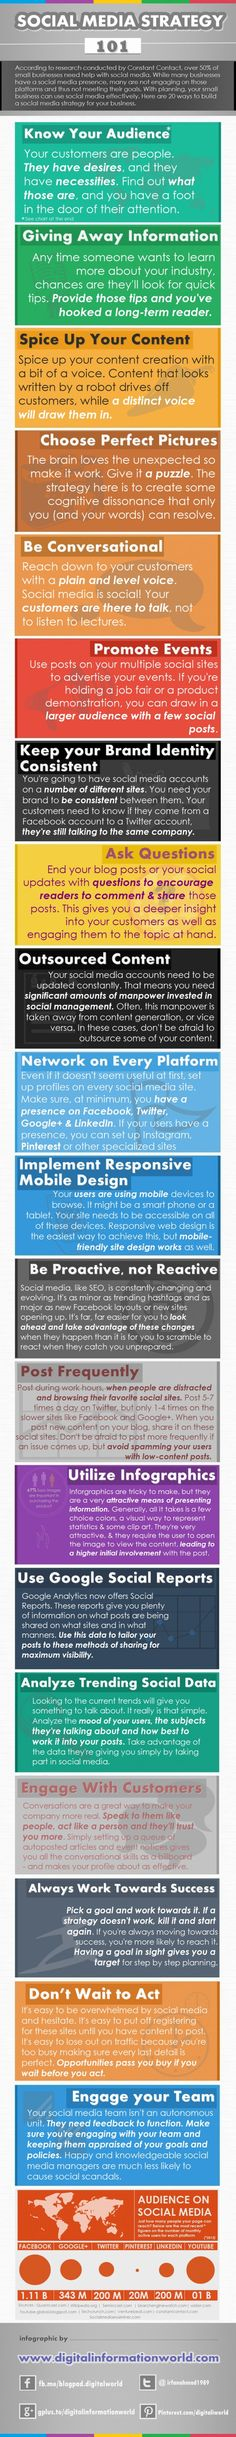 Social Media Strategy 101  Infographic